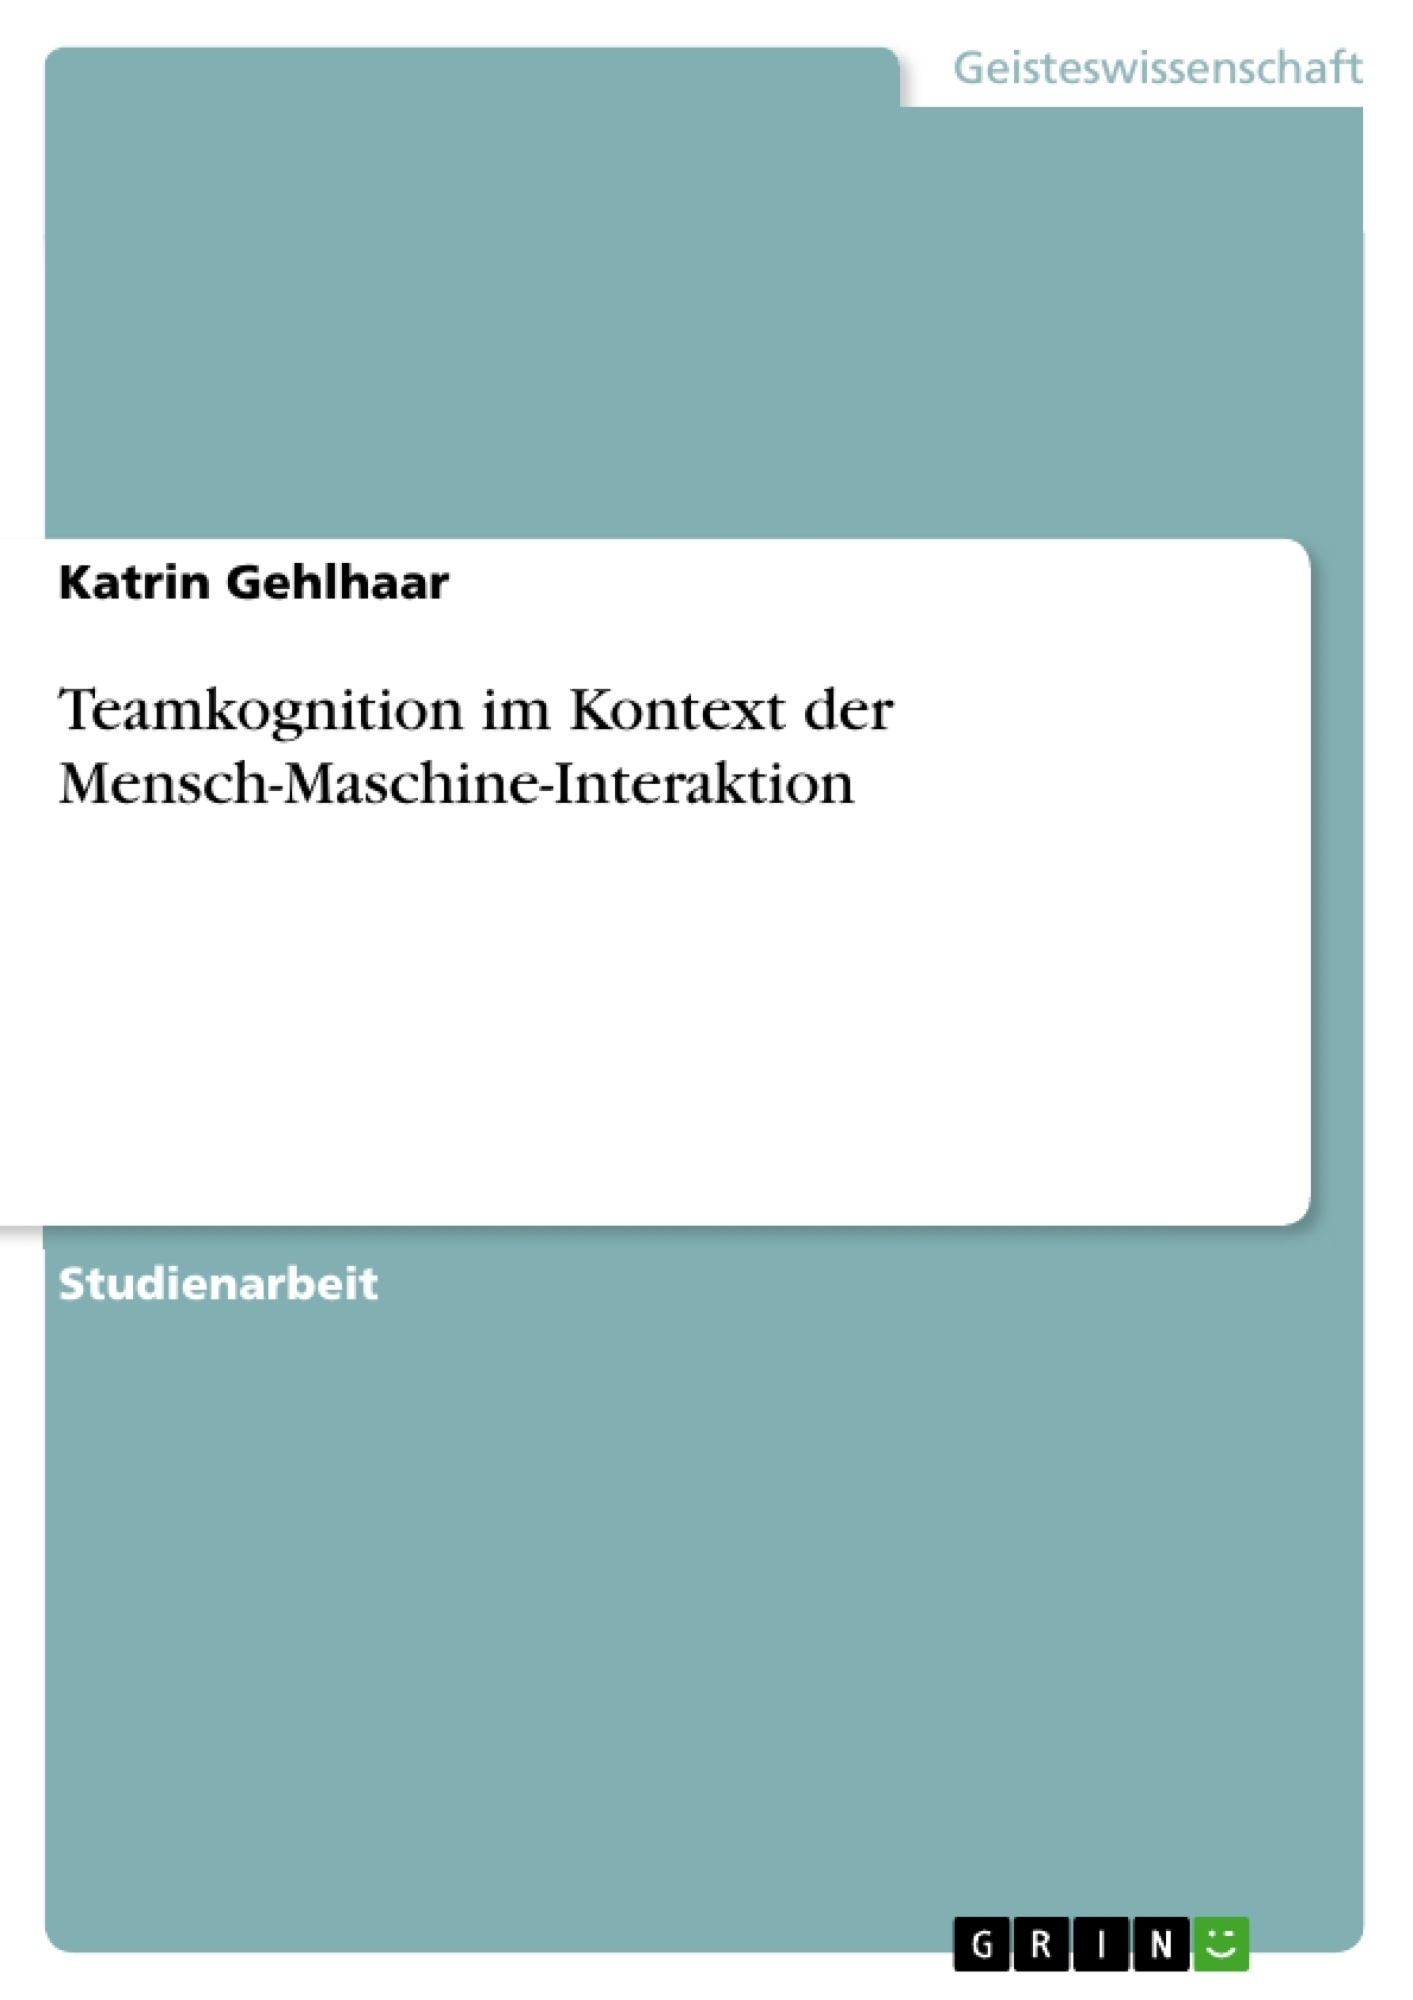 Titel: Teamkognition im Kontext der Mensch-Maschine-Interaktion